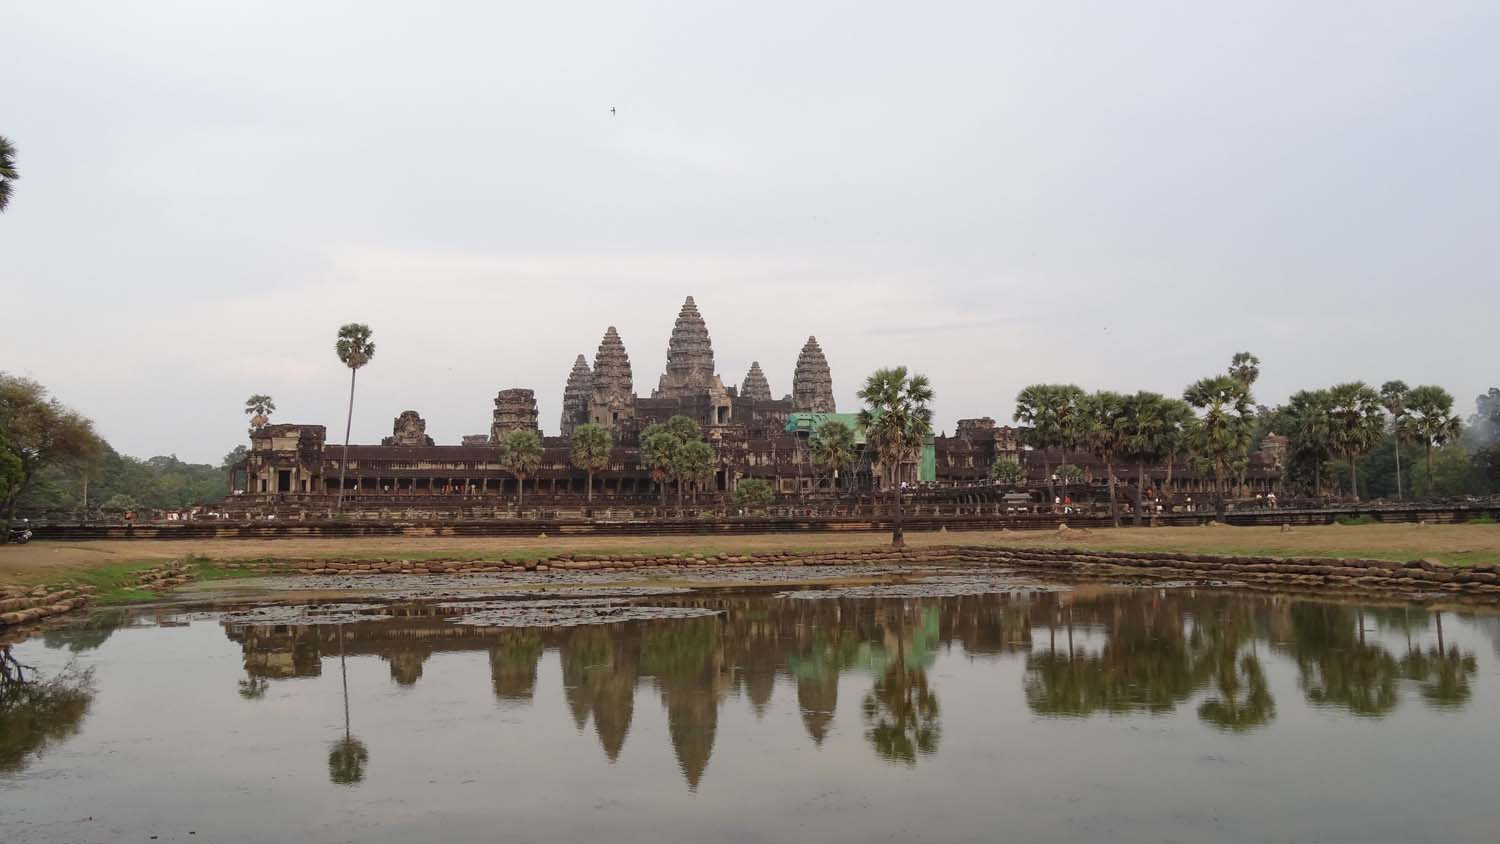 Angkor Wat - the postcard